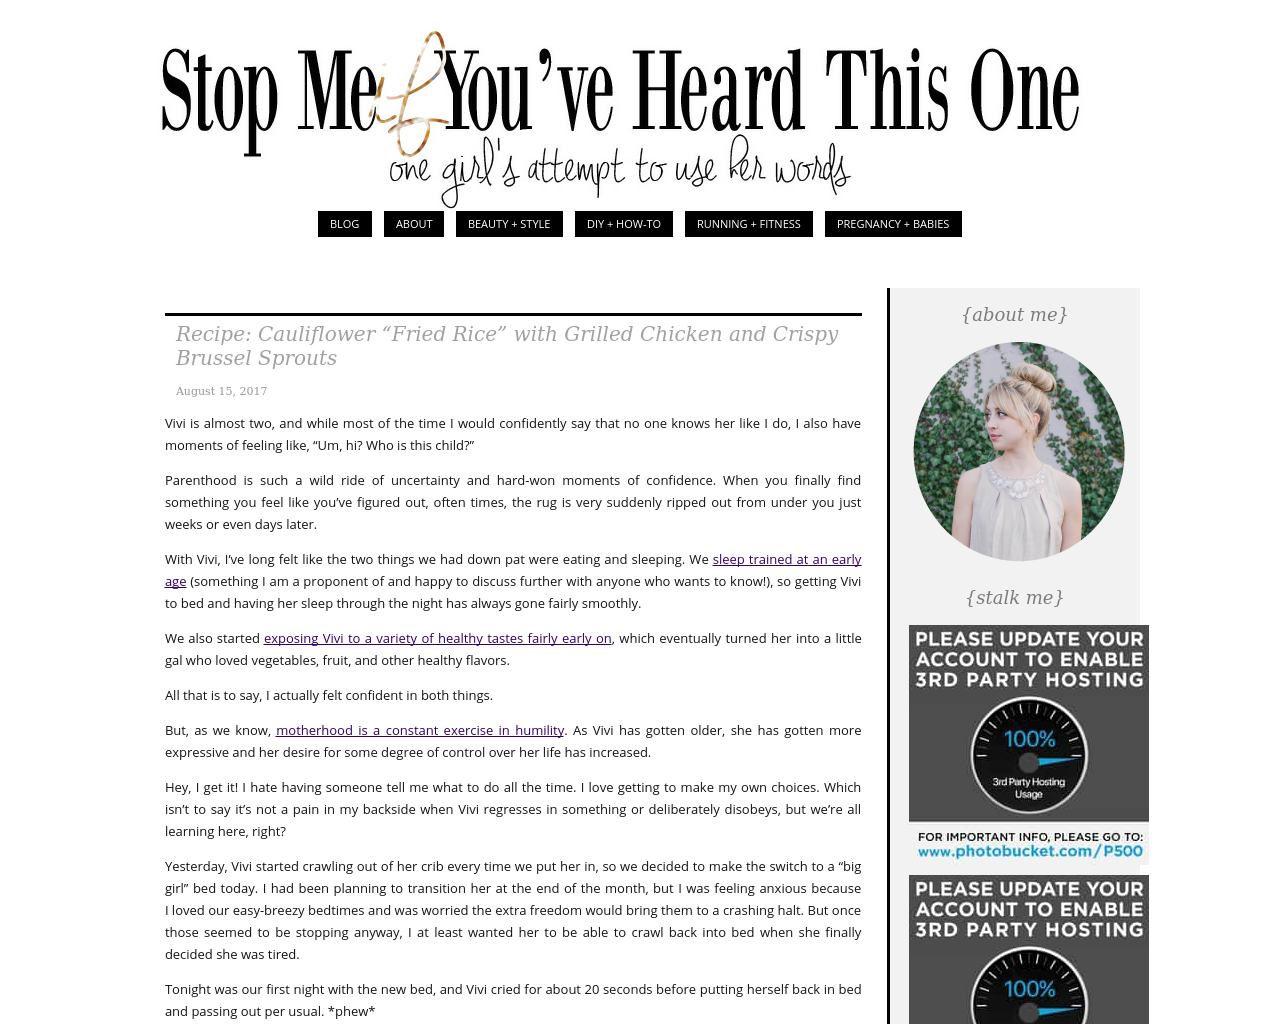 Stop-Me-If-You've-Heard-This-One-Advertising-Reviews-Pricing